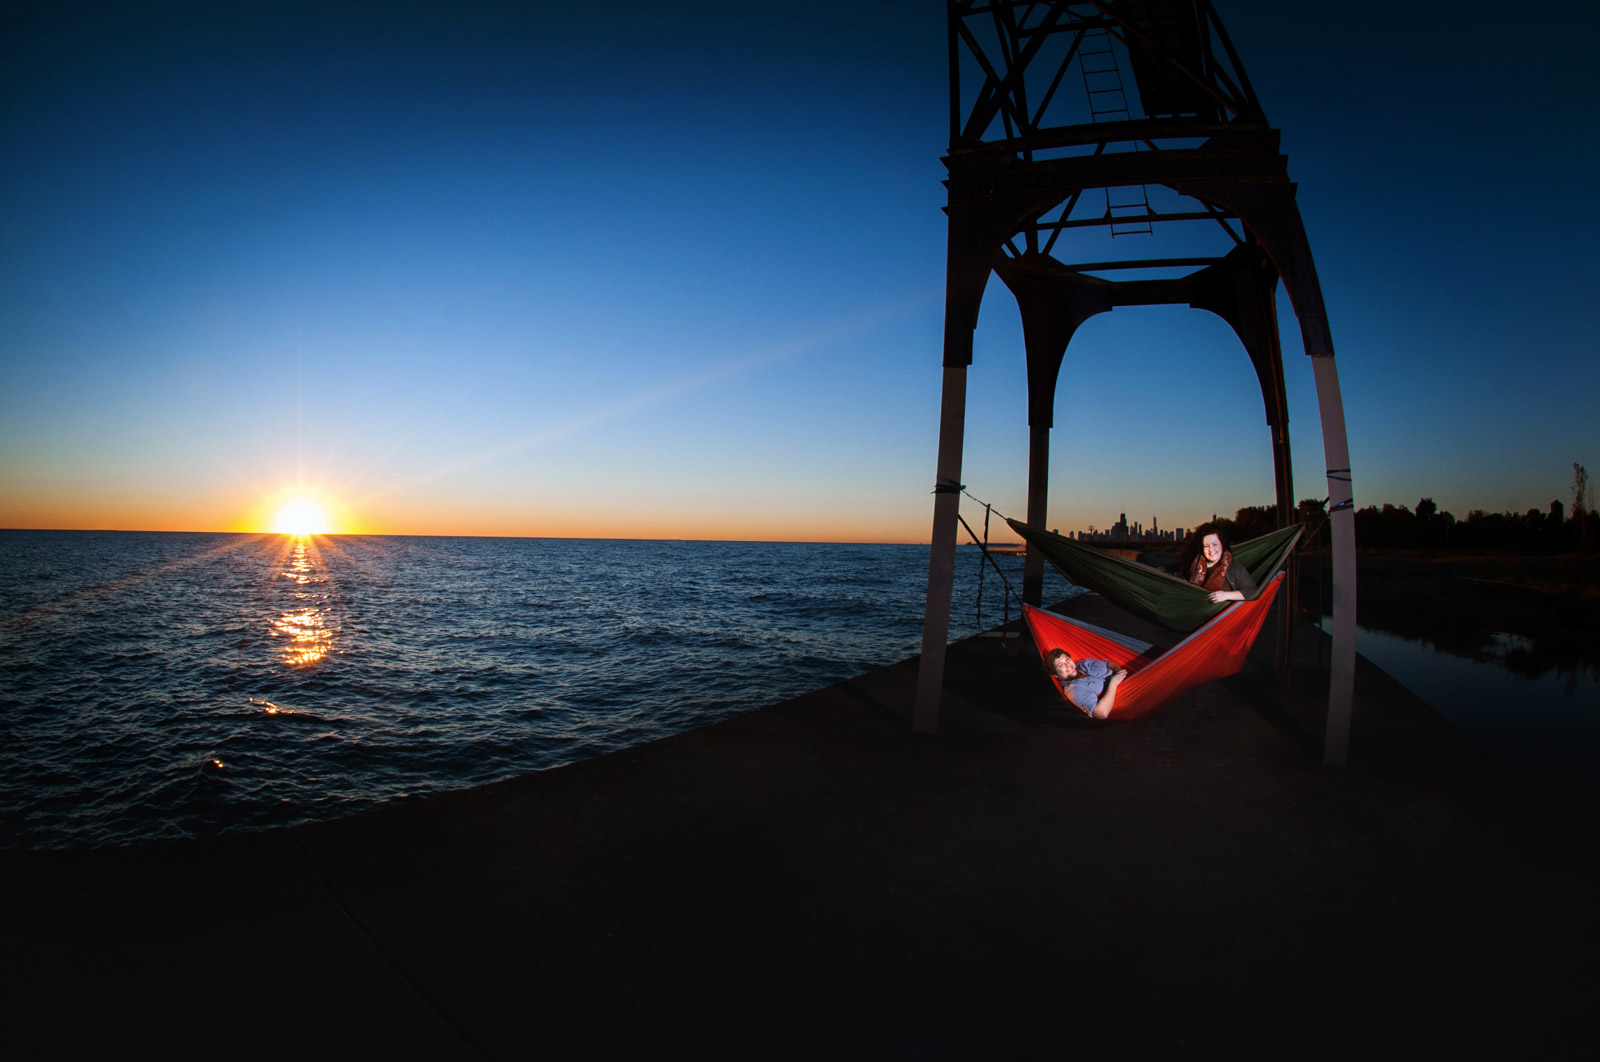 Laying in hammocks at sunrise on Lake Michigan in Chicago during their engagement session